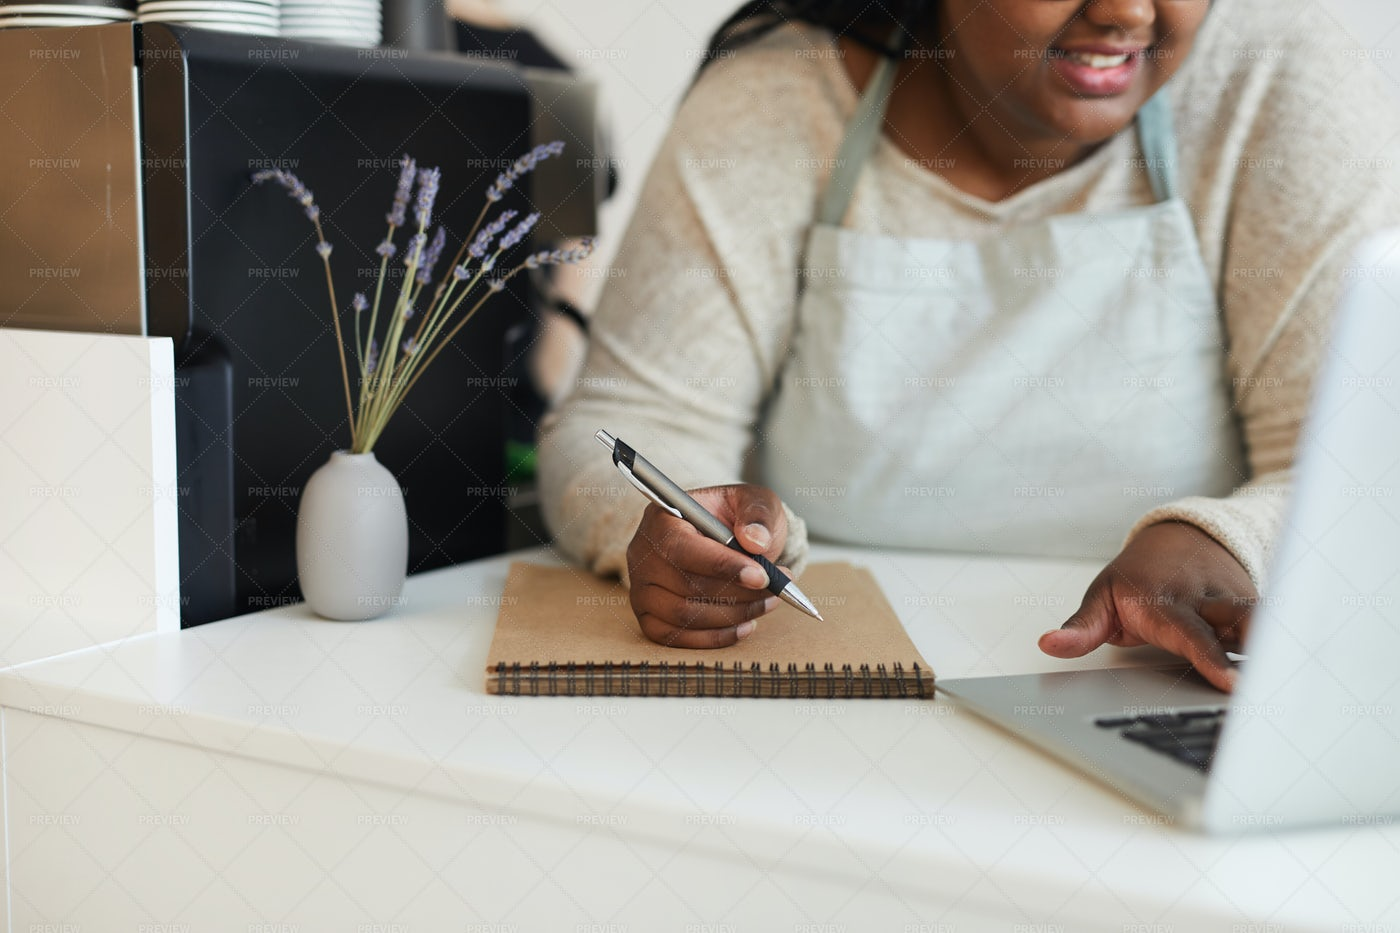 Busy Working: Stock Photos